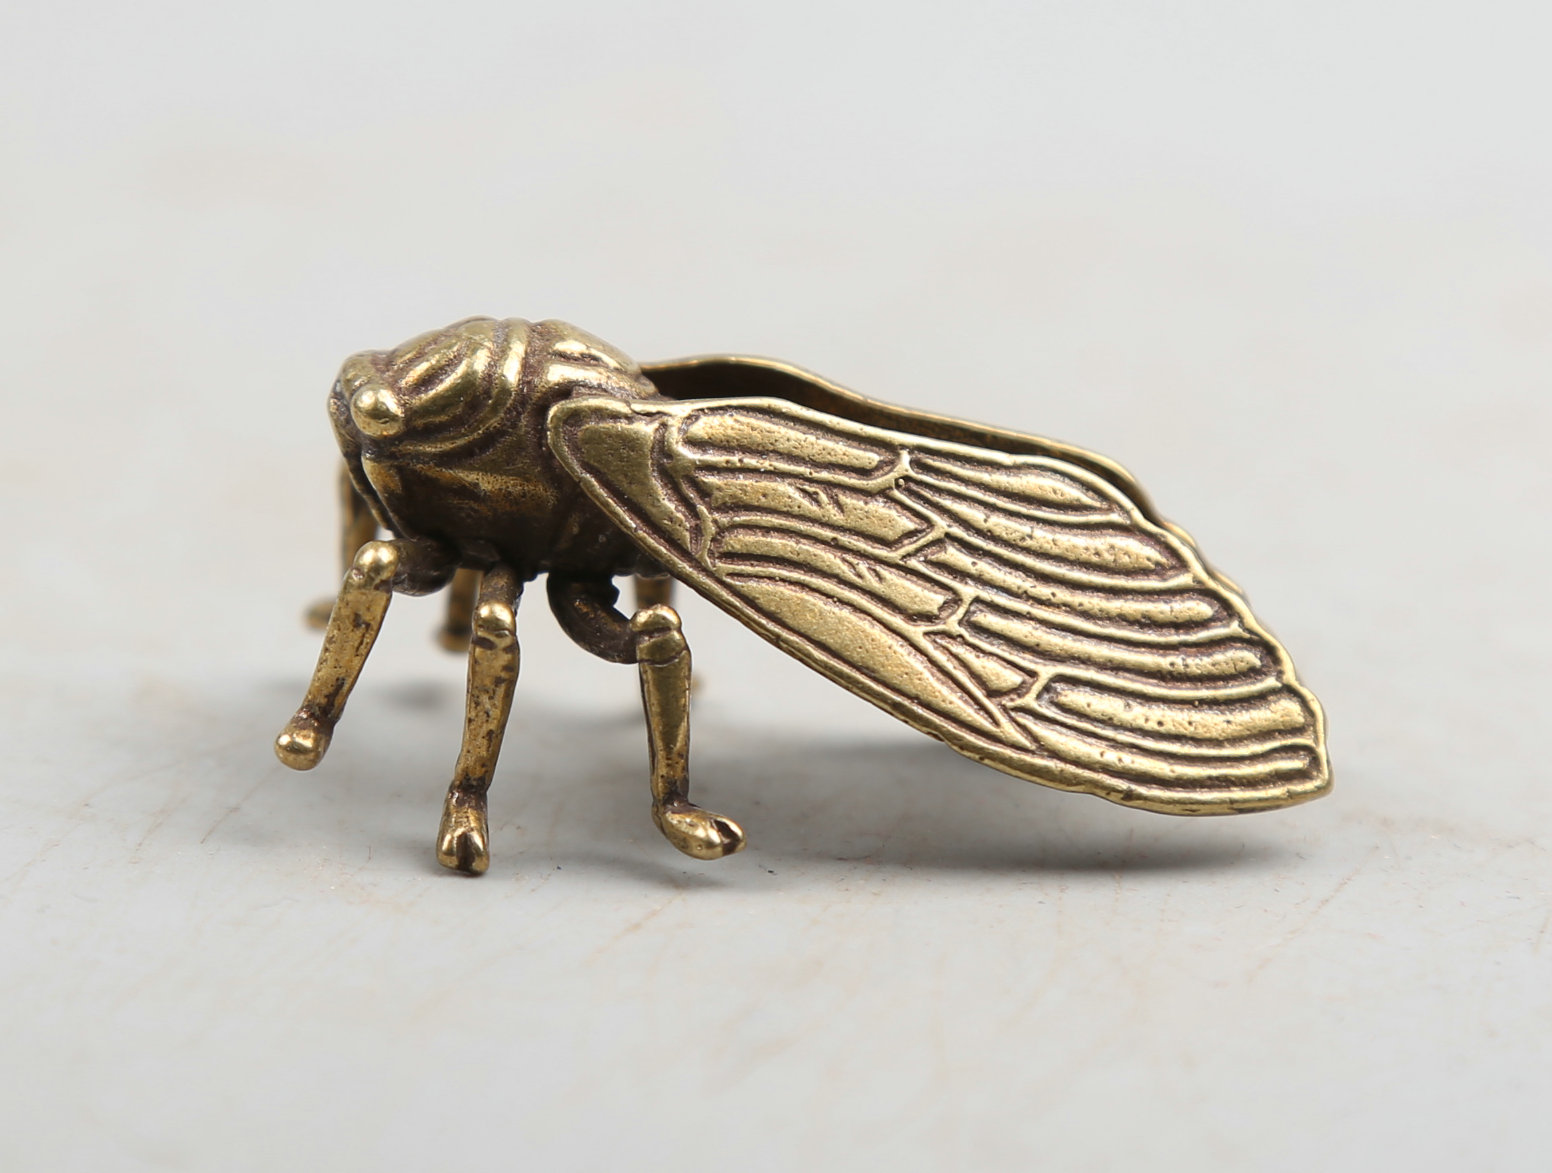 45MM 1 8 quot Collection Curio Rare Chinese Fengshui Small Bronze Exquisite Lovable Animal Cicada Golden Cicada Statue Statuary 22g in Statues amp Sculptures from Home amp Garden